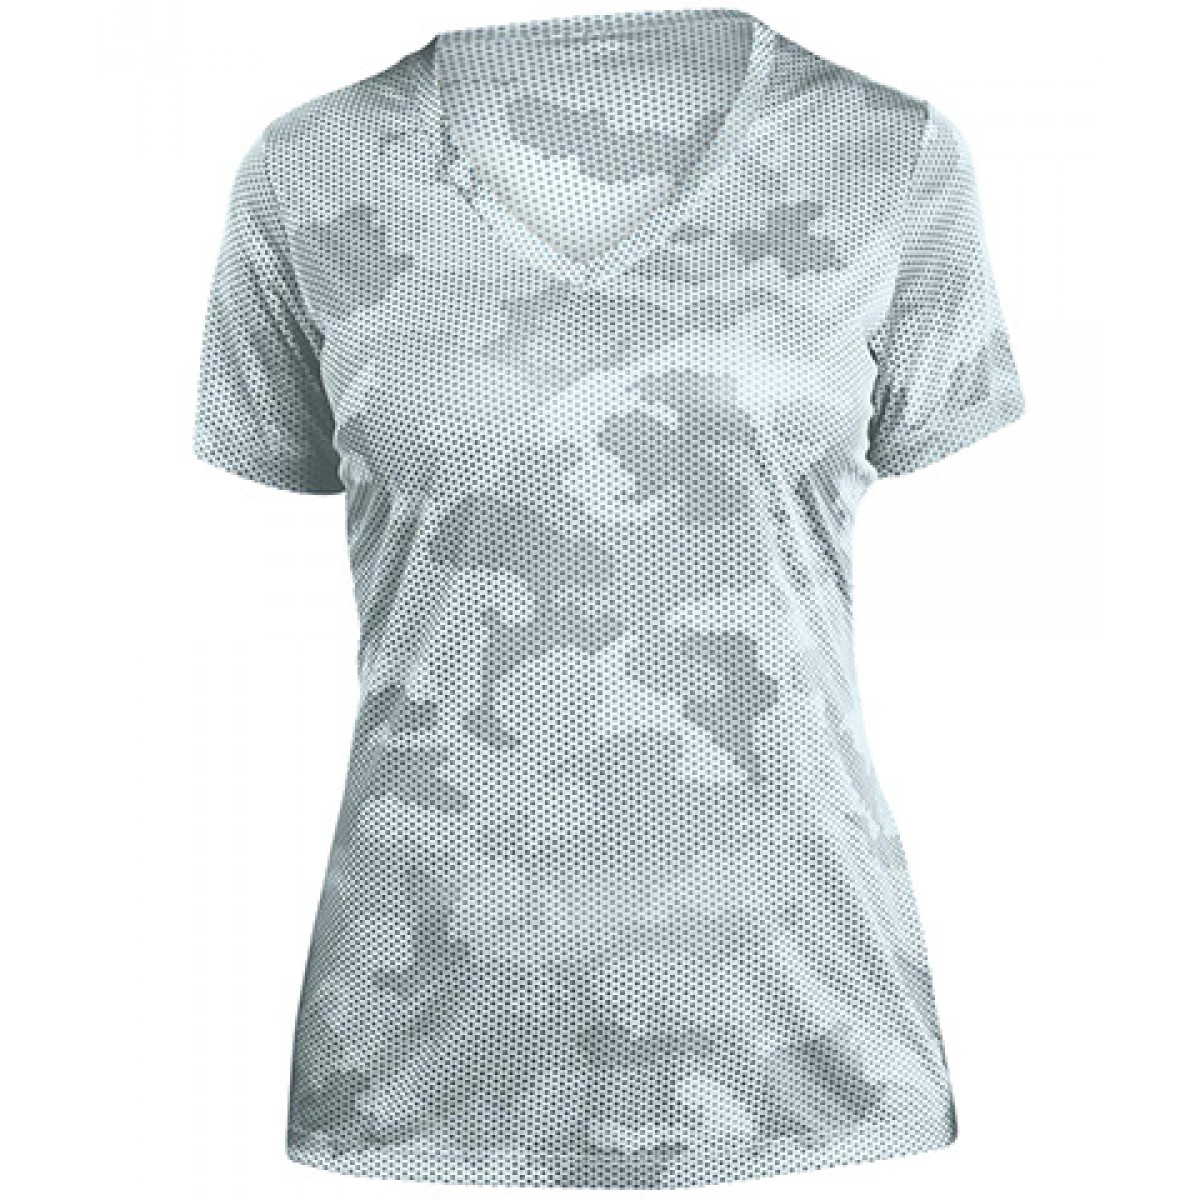 Ladies CamoHex V-Neck Tee-White-3XL